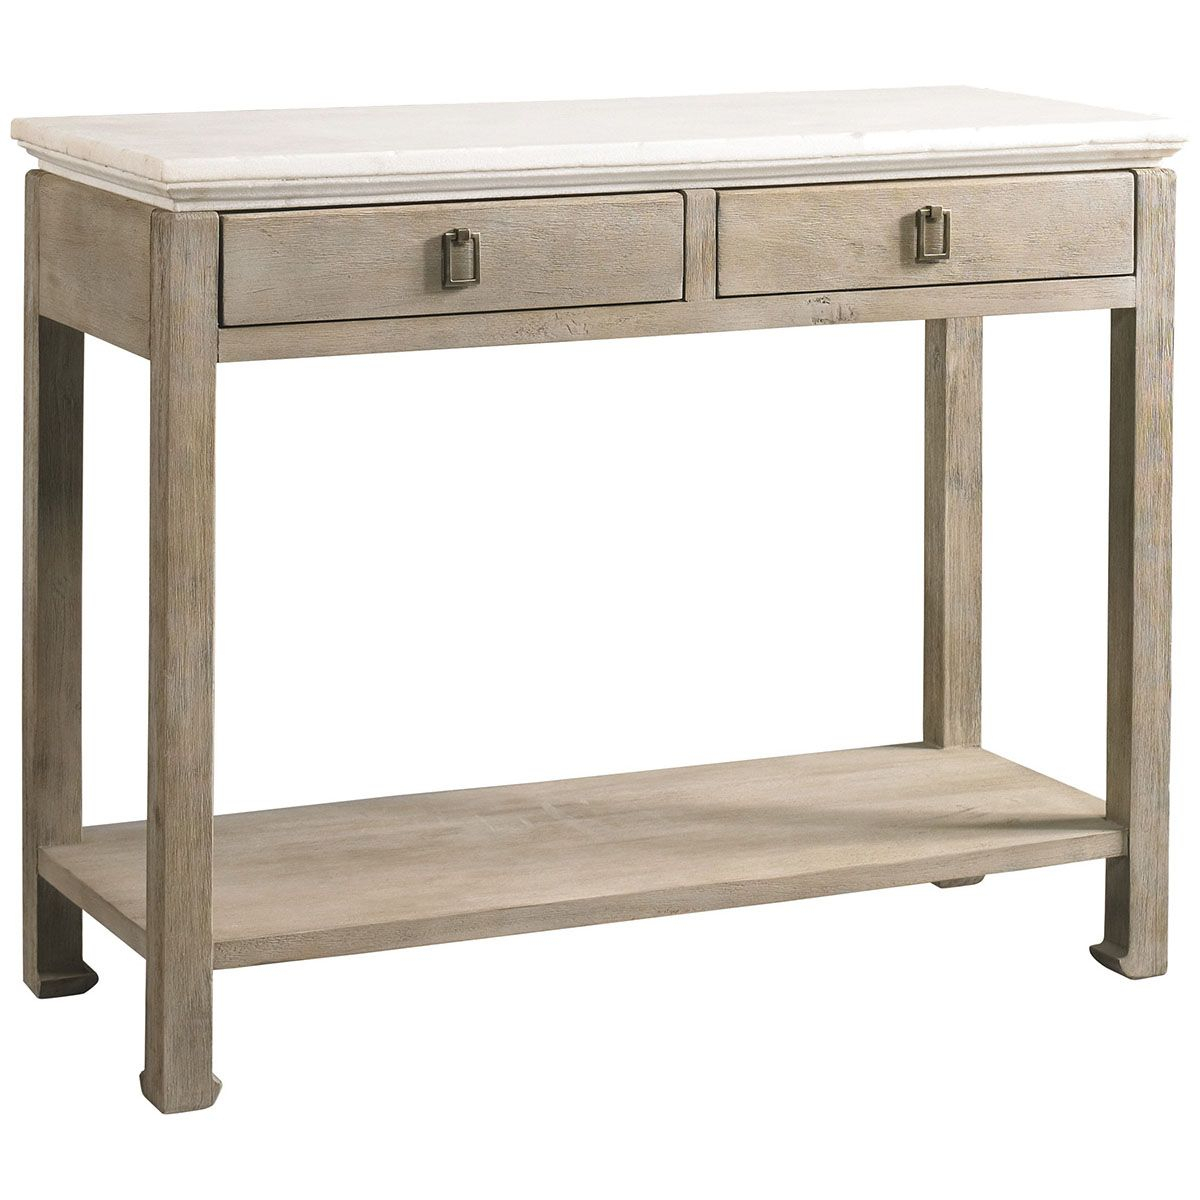 Lillian August Camille Console La96330-01 | Lillian August regarding Ventana Display Console Tables (Image 19 of 30)